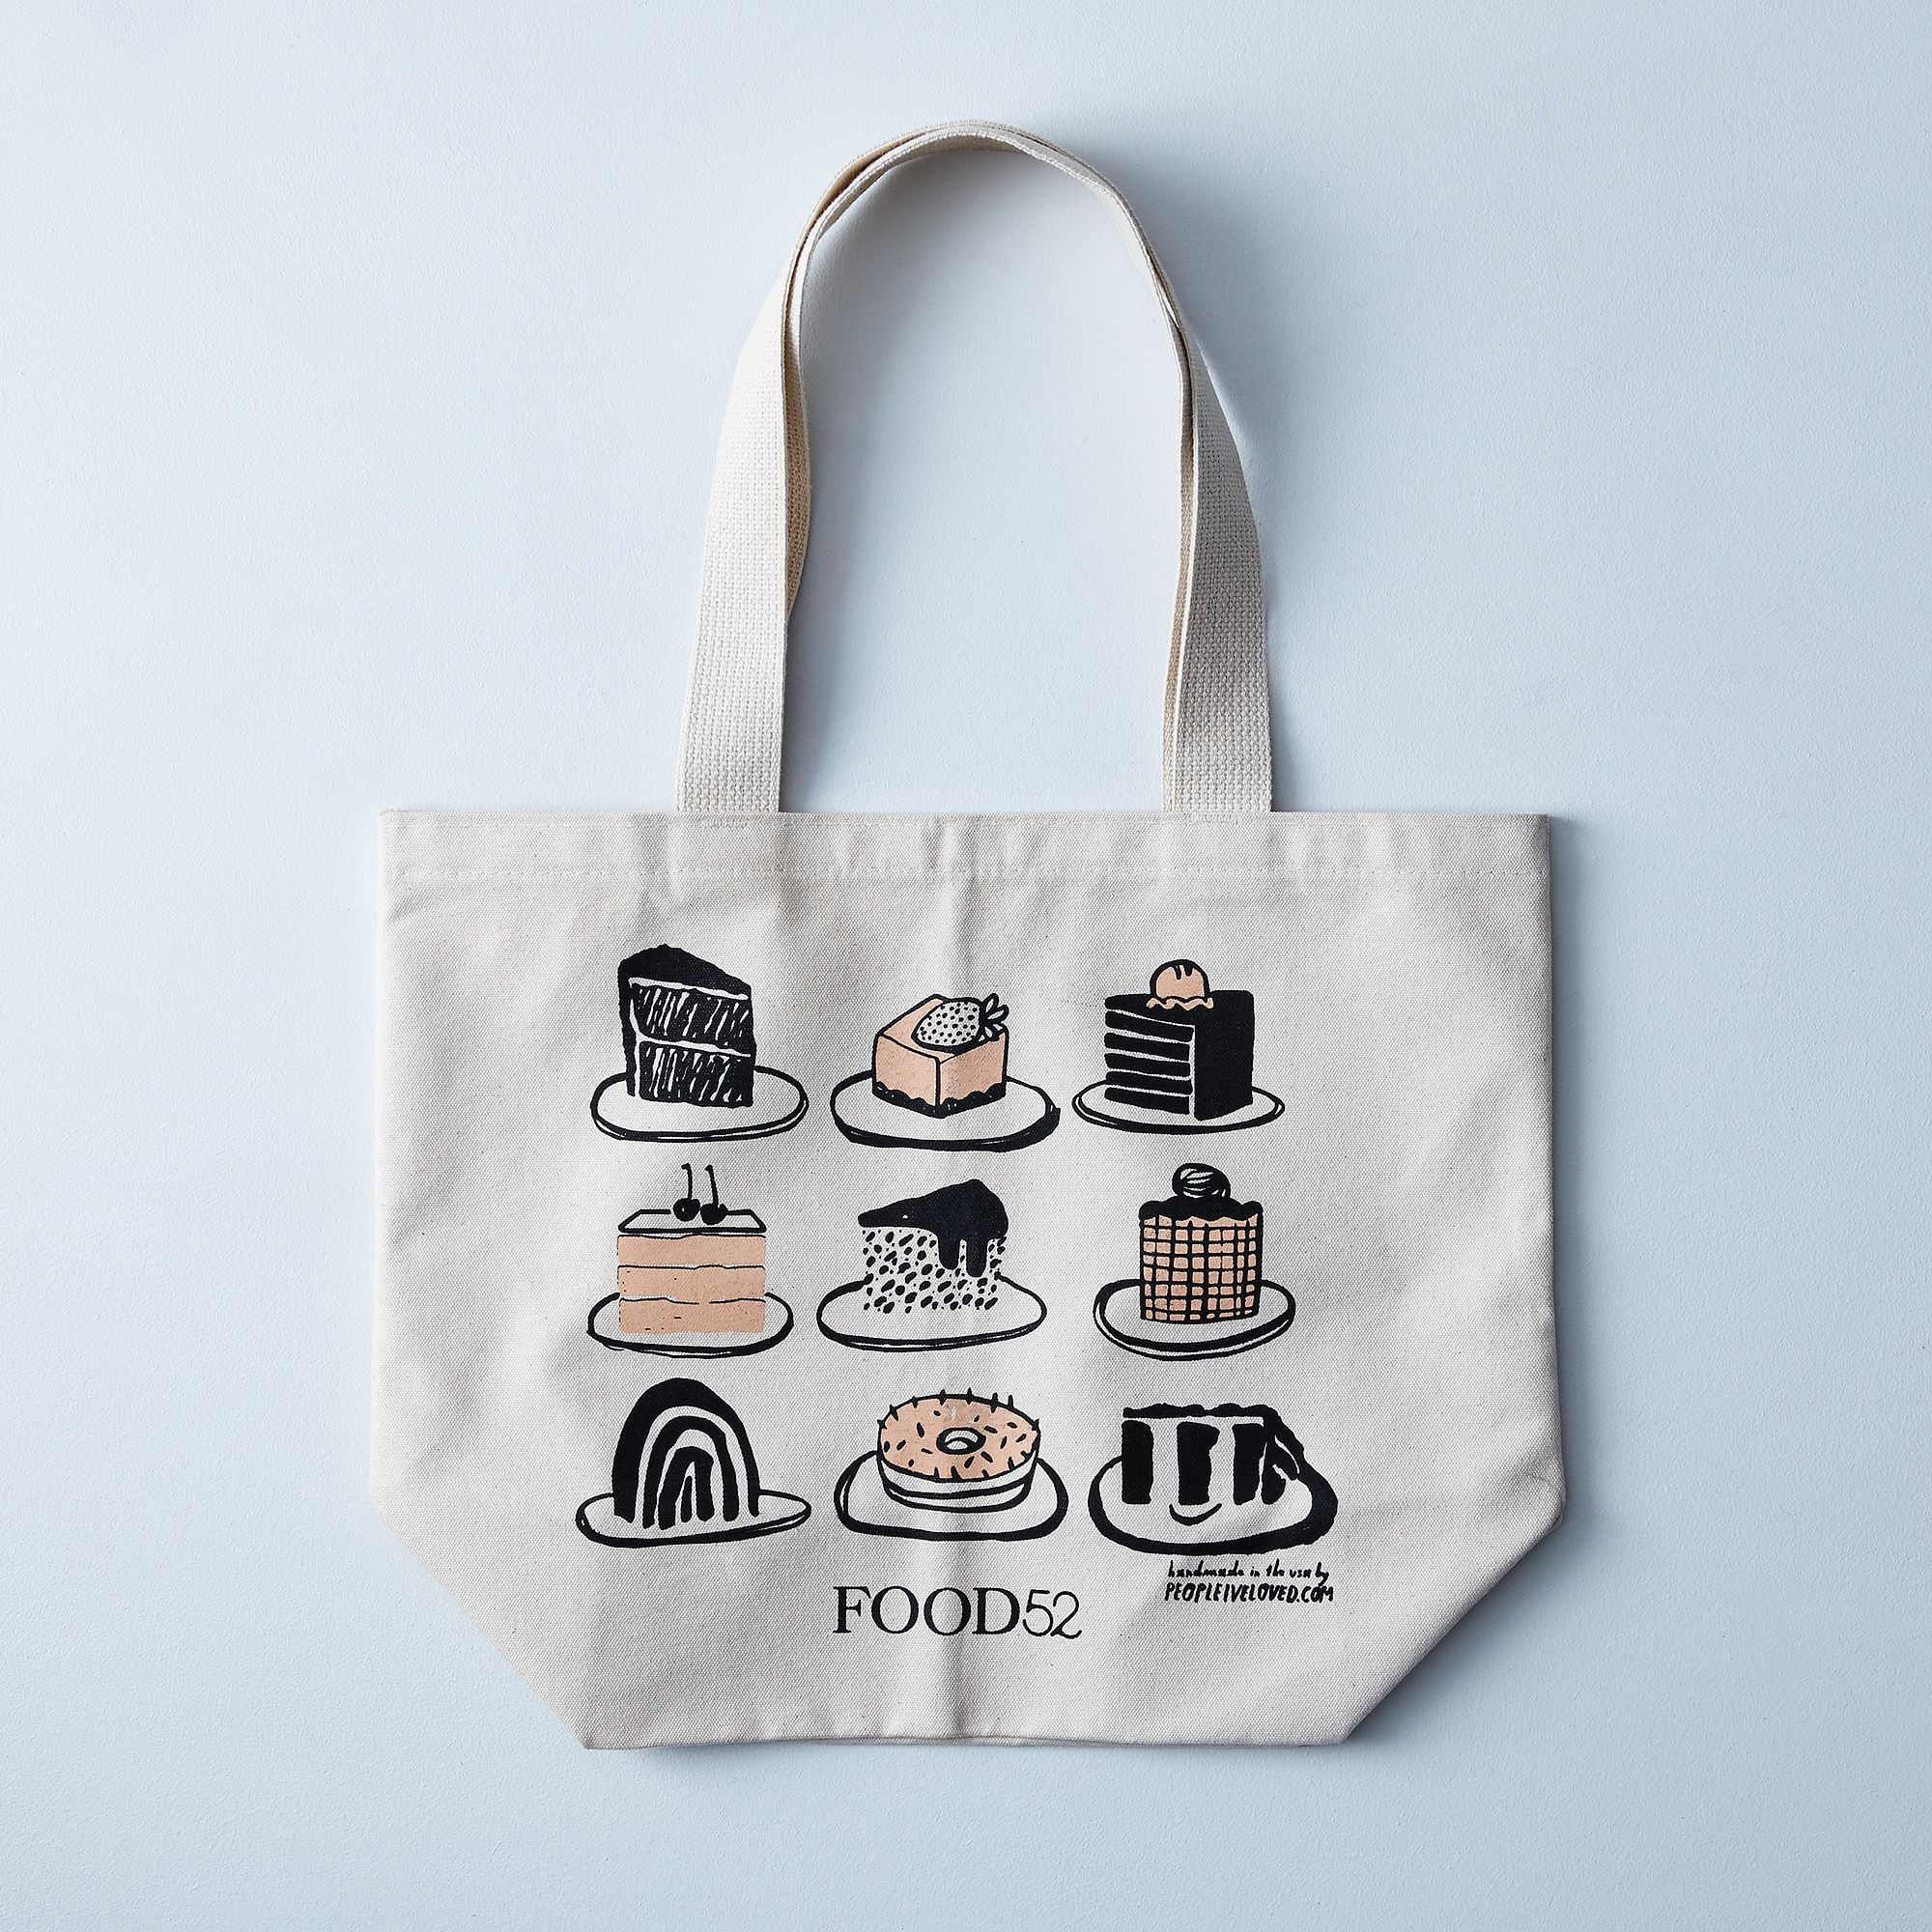 38498f05 685c 4531 ad9f 0d6e069b37d2  2017 0217 people i ve loved illustrated desserts tote silo rocky luten 226